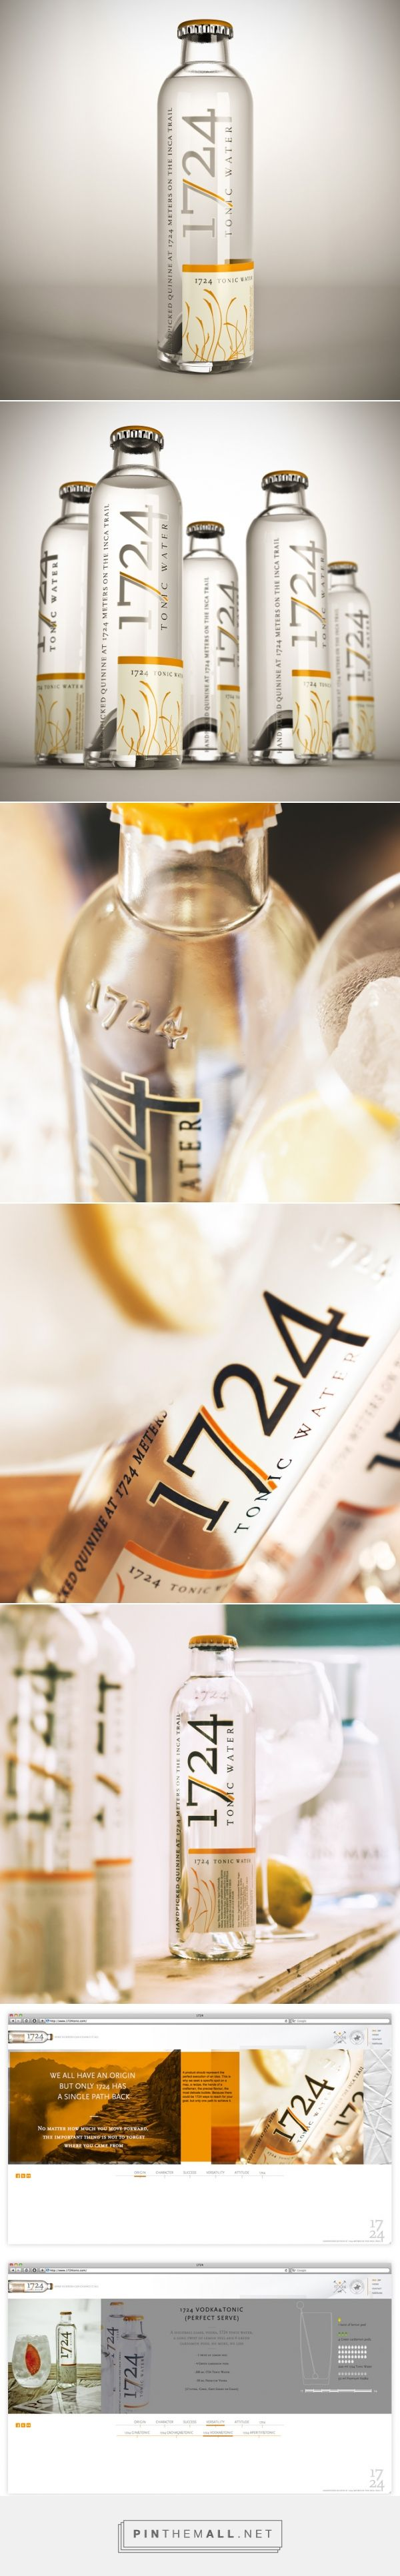 1724 Tonic Water - seriesnemo  http://www.seriesnemo.es/1724-Tonic-Water - created via http://pinthemall.net